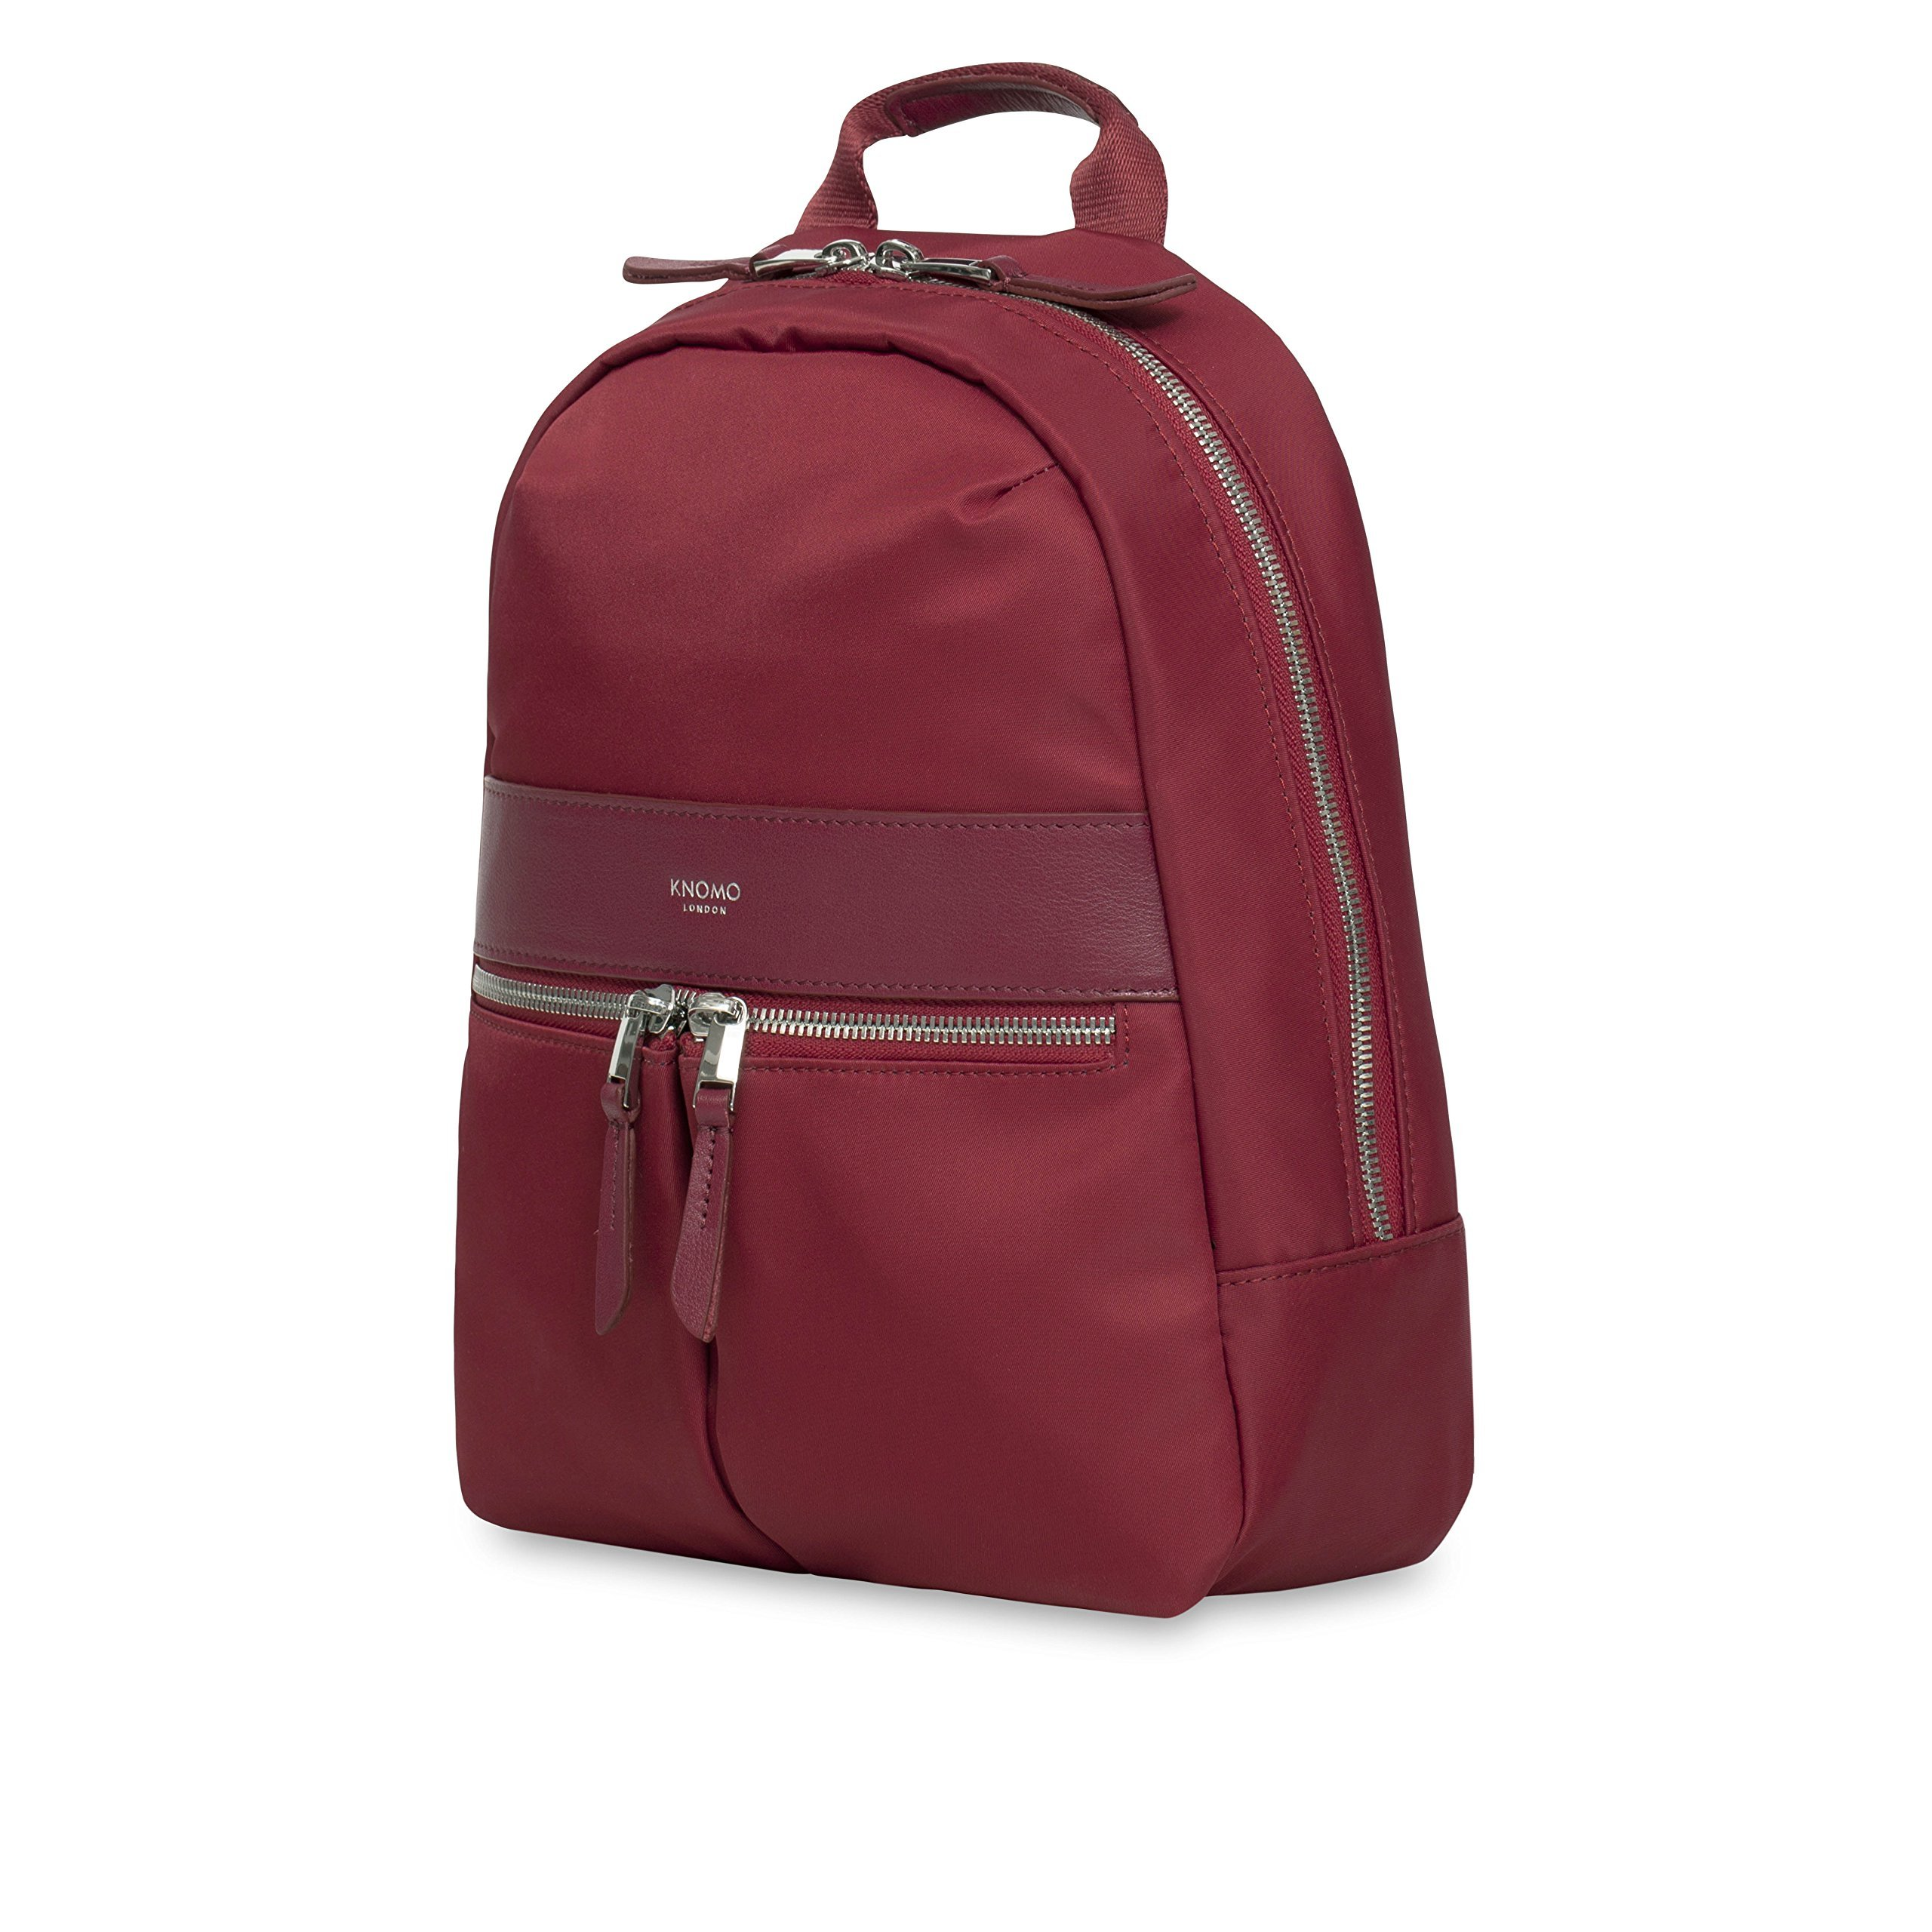 KNOMO Mini Beauchamp Backpack